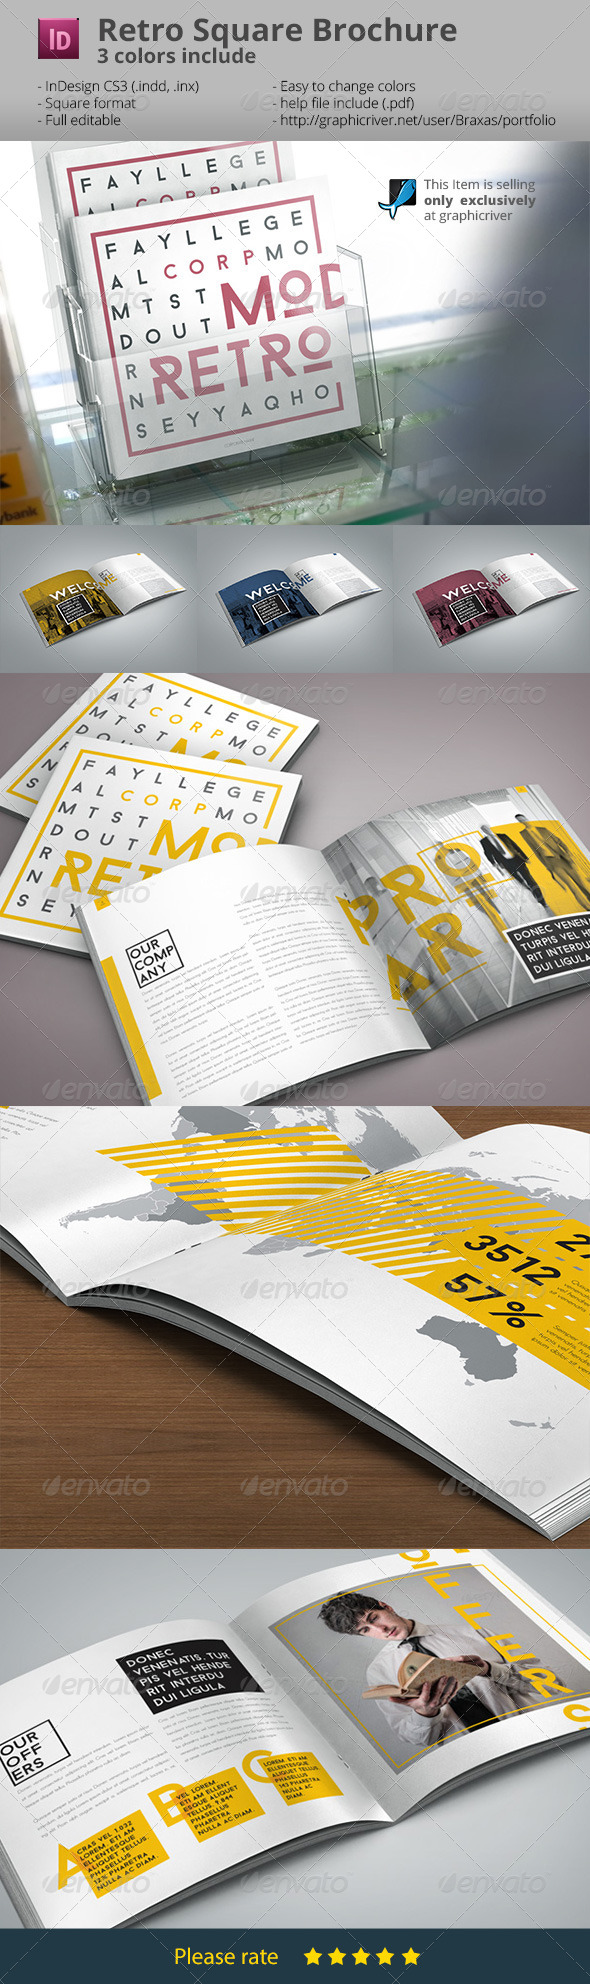 GraphicRiver Retro Style Square Brochure Indesign 7401958